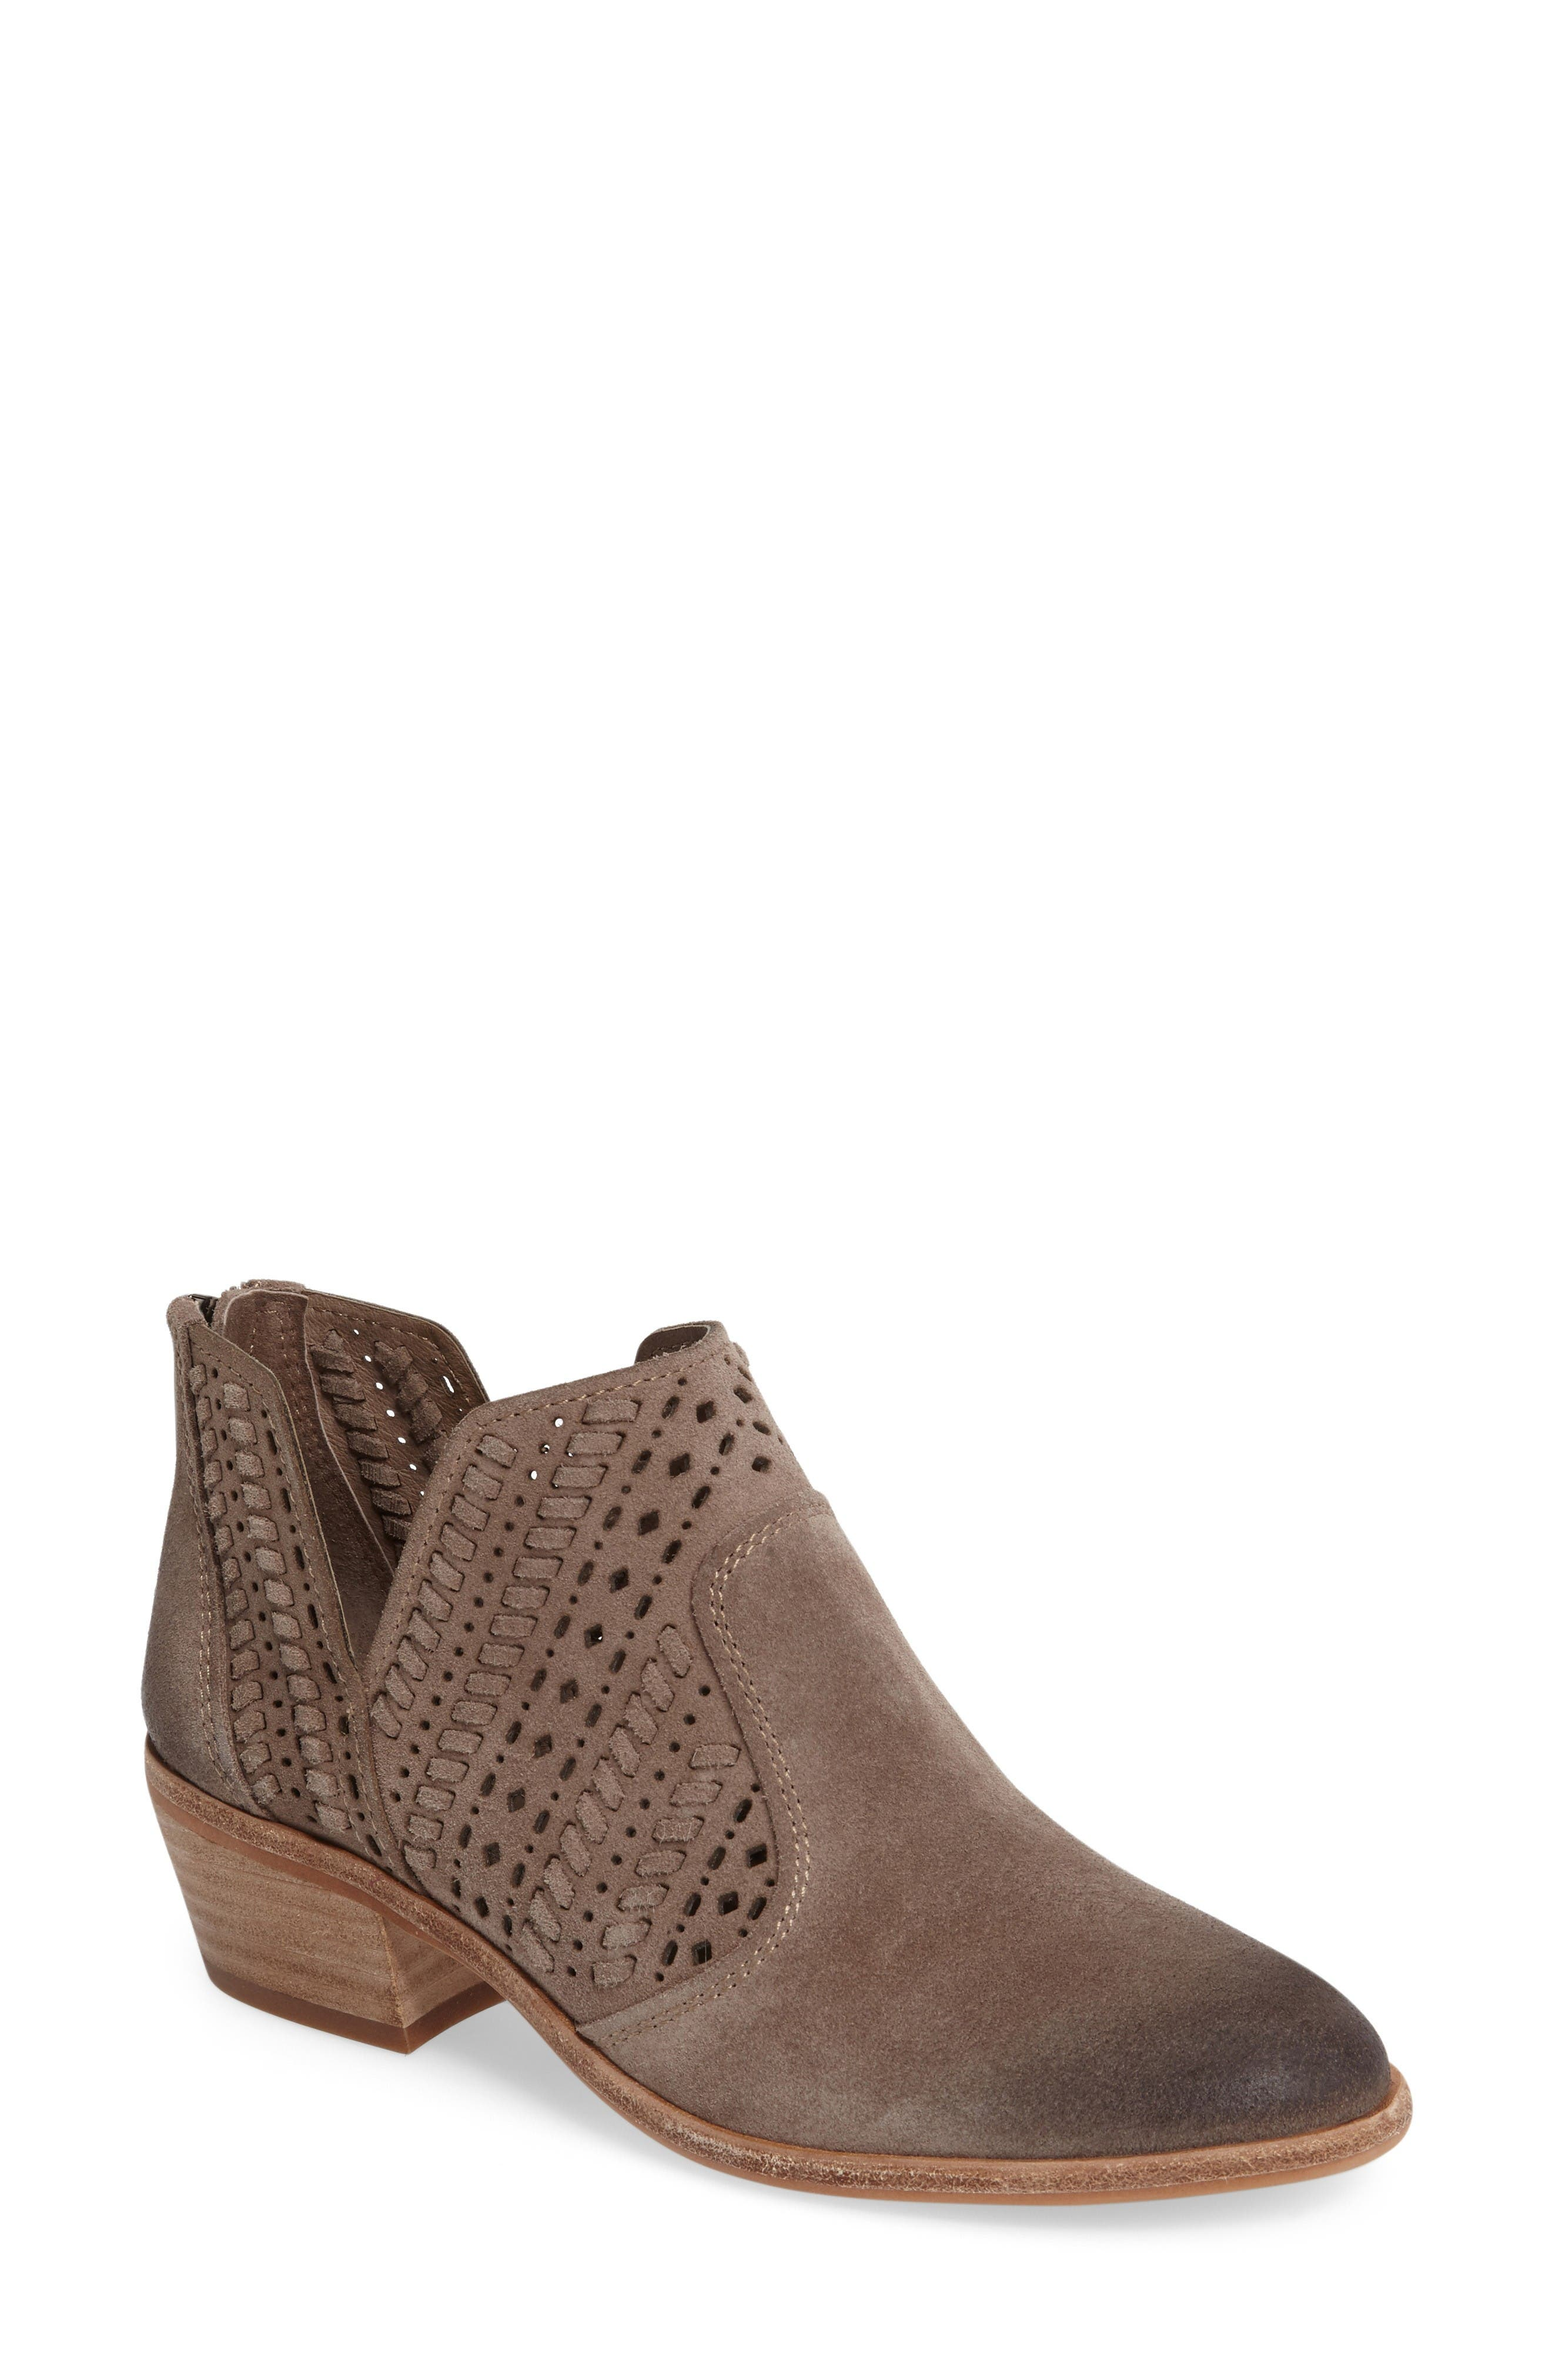 Alternate Image 1 Selected - Vince Camuto Prasata Bootie (Women)